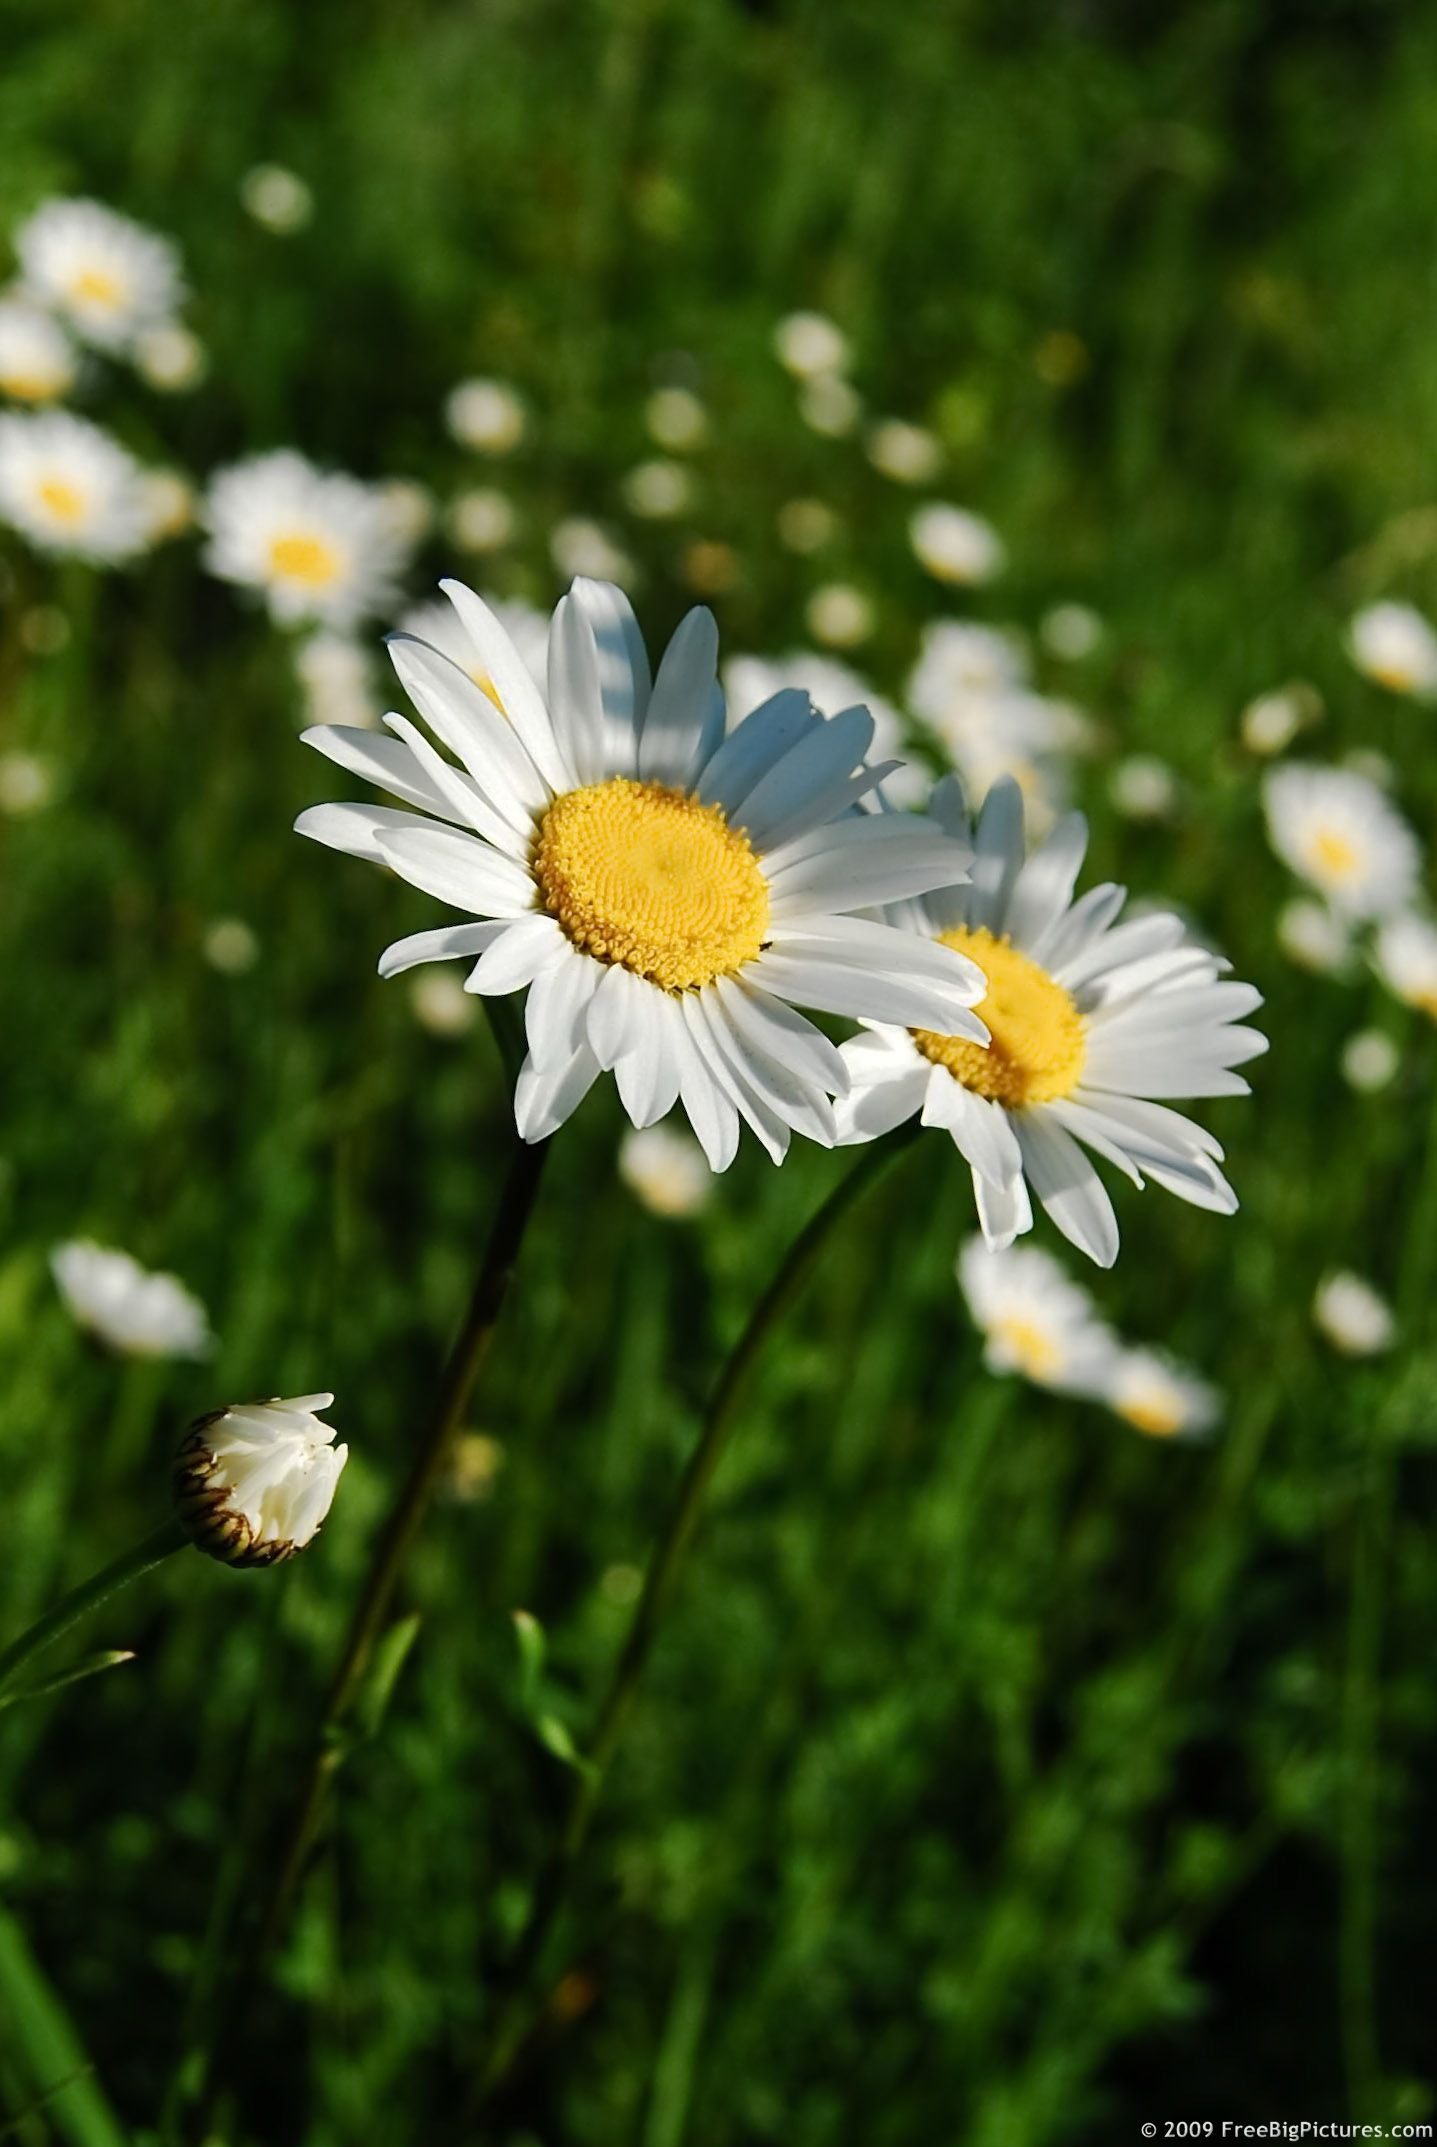 Daisies pictures photo of wild flowers daisies is a lovely daisies pictures photo of wild flowers daisies is a lovely picture to free use izmirmasajfo Gallery